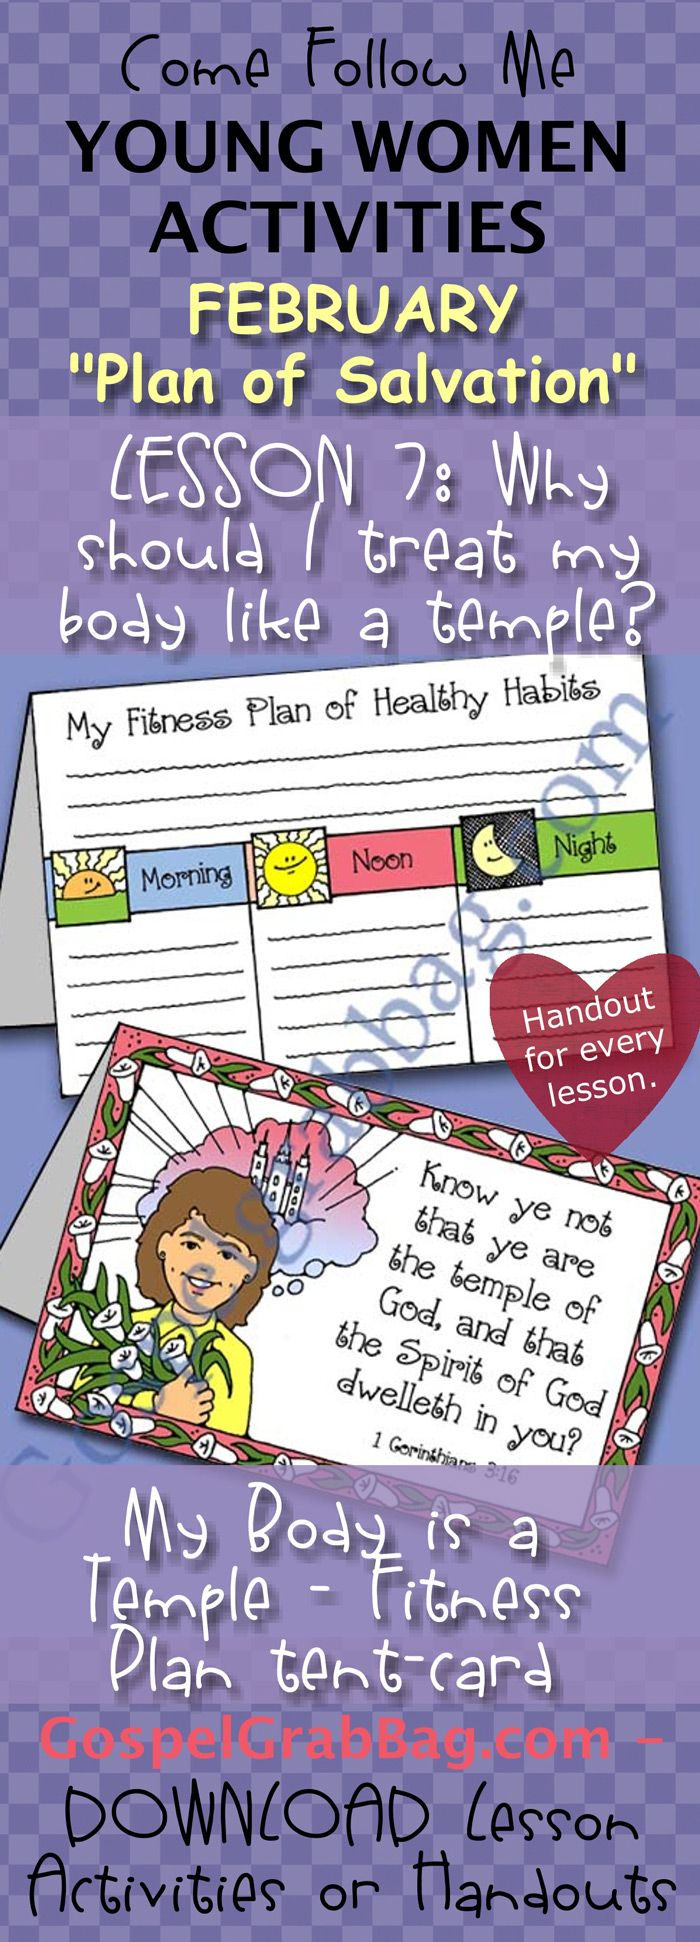 BODY IS A TEMPLE - FITNESS: Come Follow Me – LDS Young Women Activities, February Theme: The Plan of Salvation, Lesson Topic #7: Why should I treat my body like a temple? handout for every lesson, ACTIVITY: My Body is a Temple – Fitness Plan tent-card, Gospel grab bag – handouts to download from gospelgrabbag.com